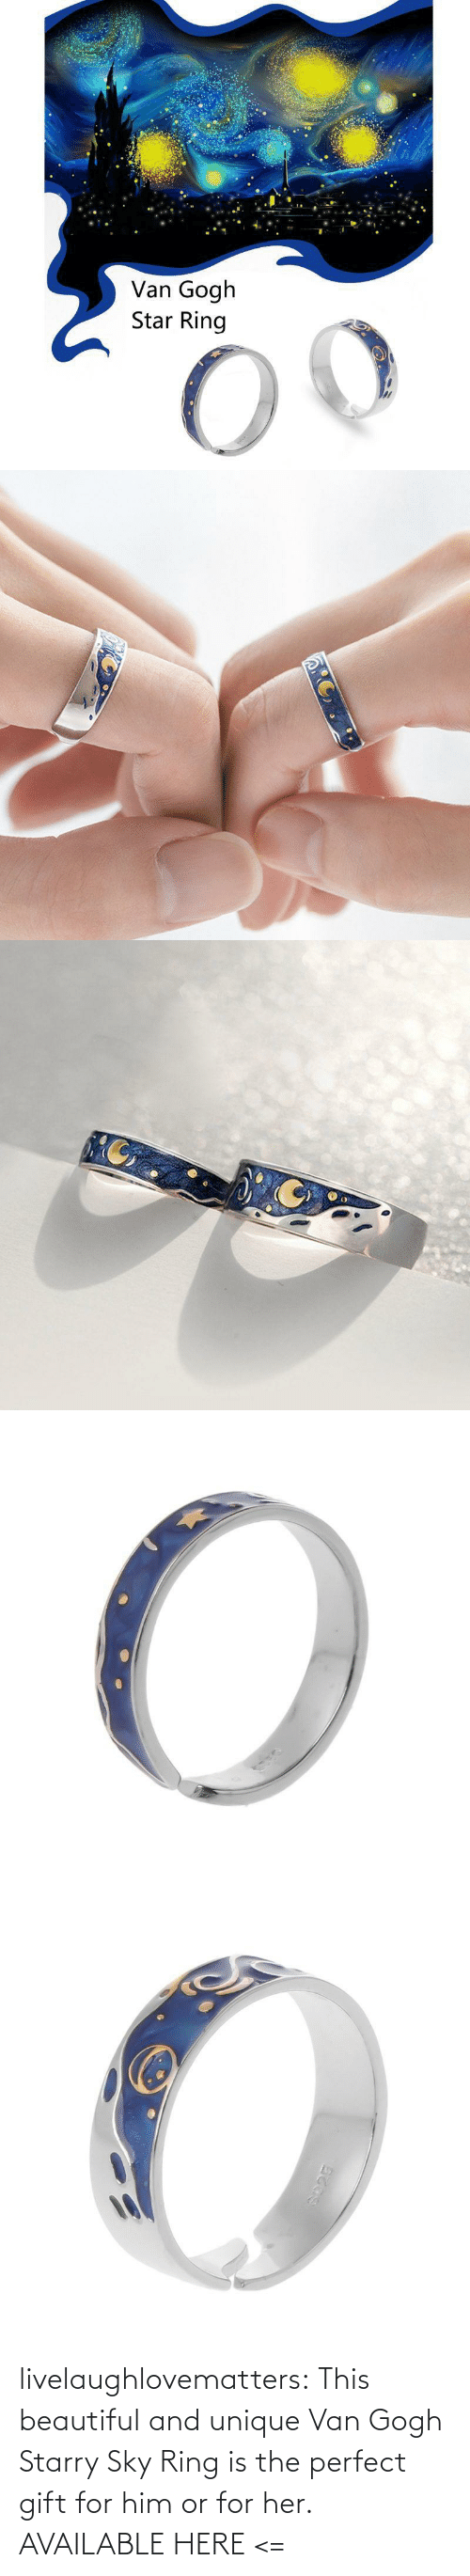 For Him: livelaughlovematters:  This beautiful and unique Van Gogh Starry Sky Ring is the perfect gift for him or for her. AVAILABLE HERE <=